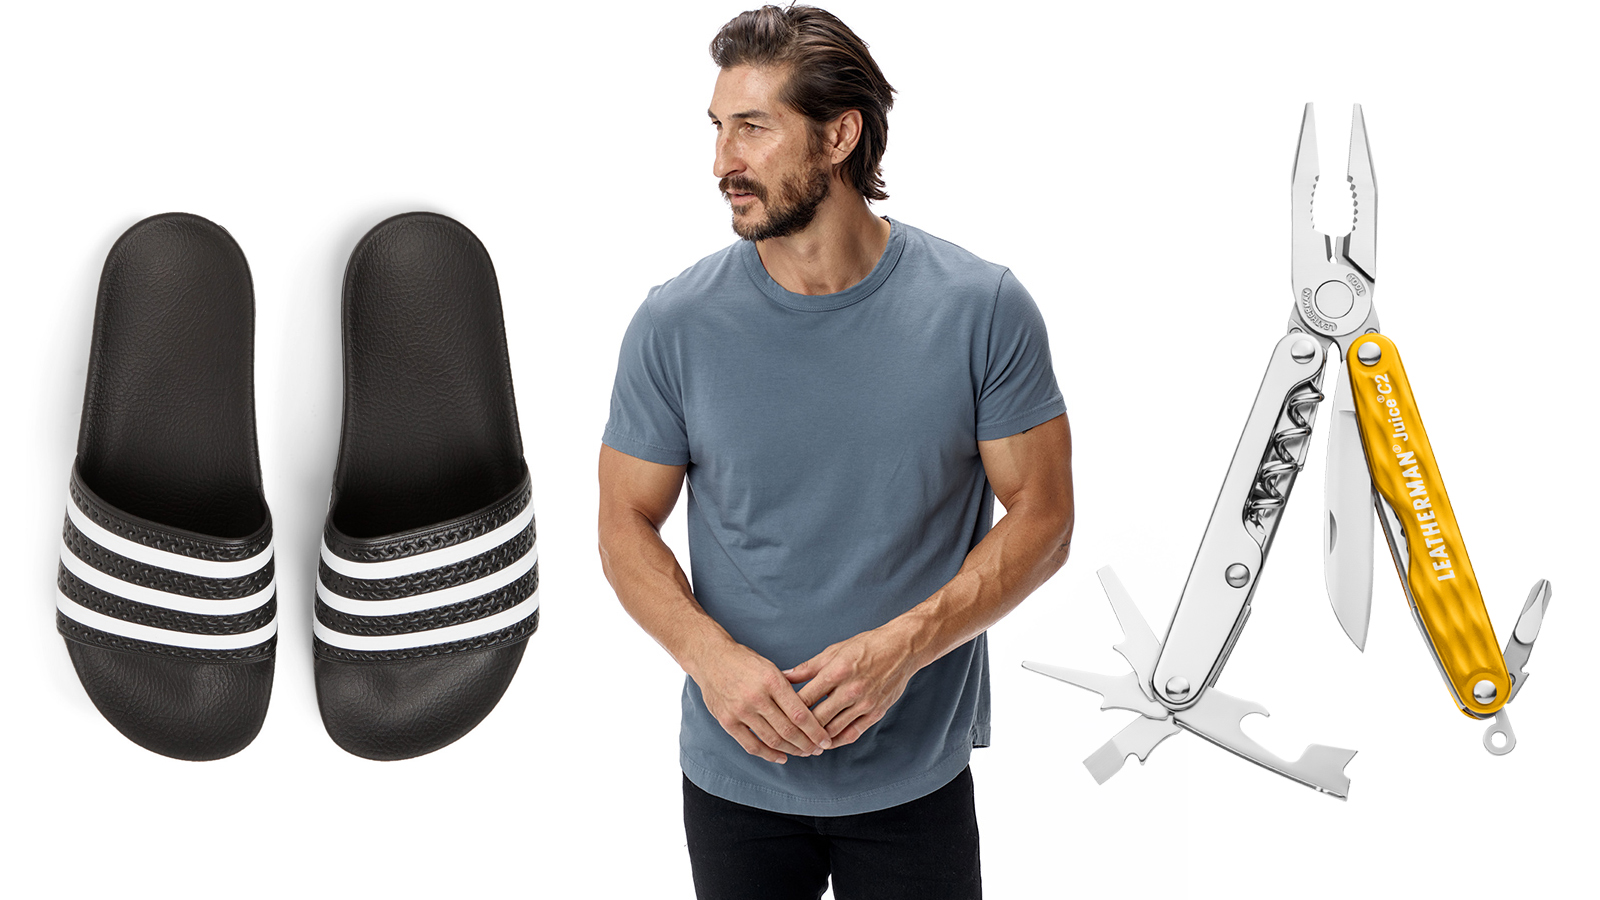 The 10 Best Father's Day Gifts for New Dads